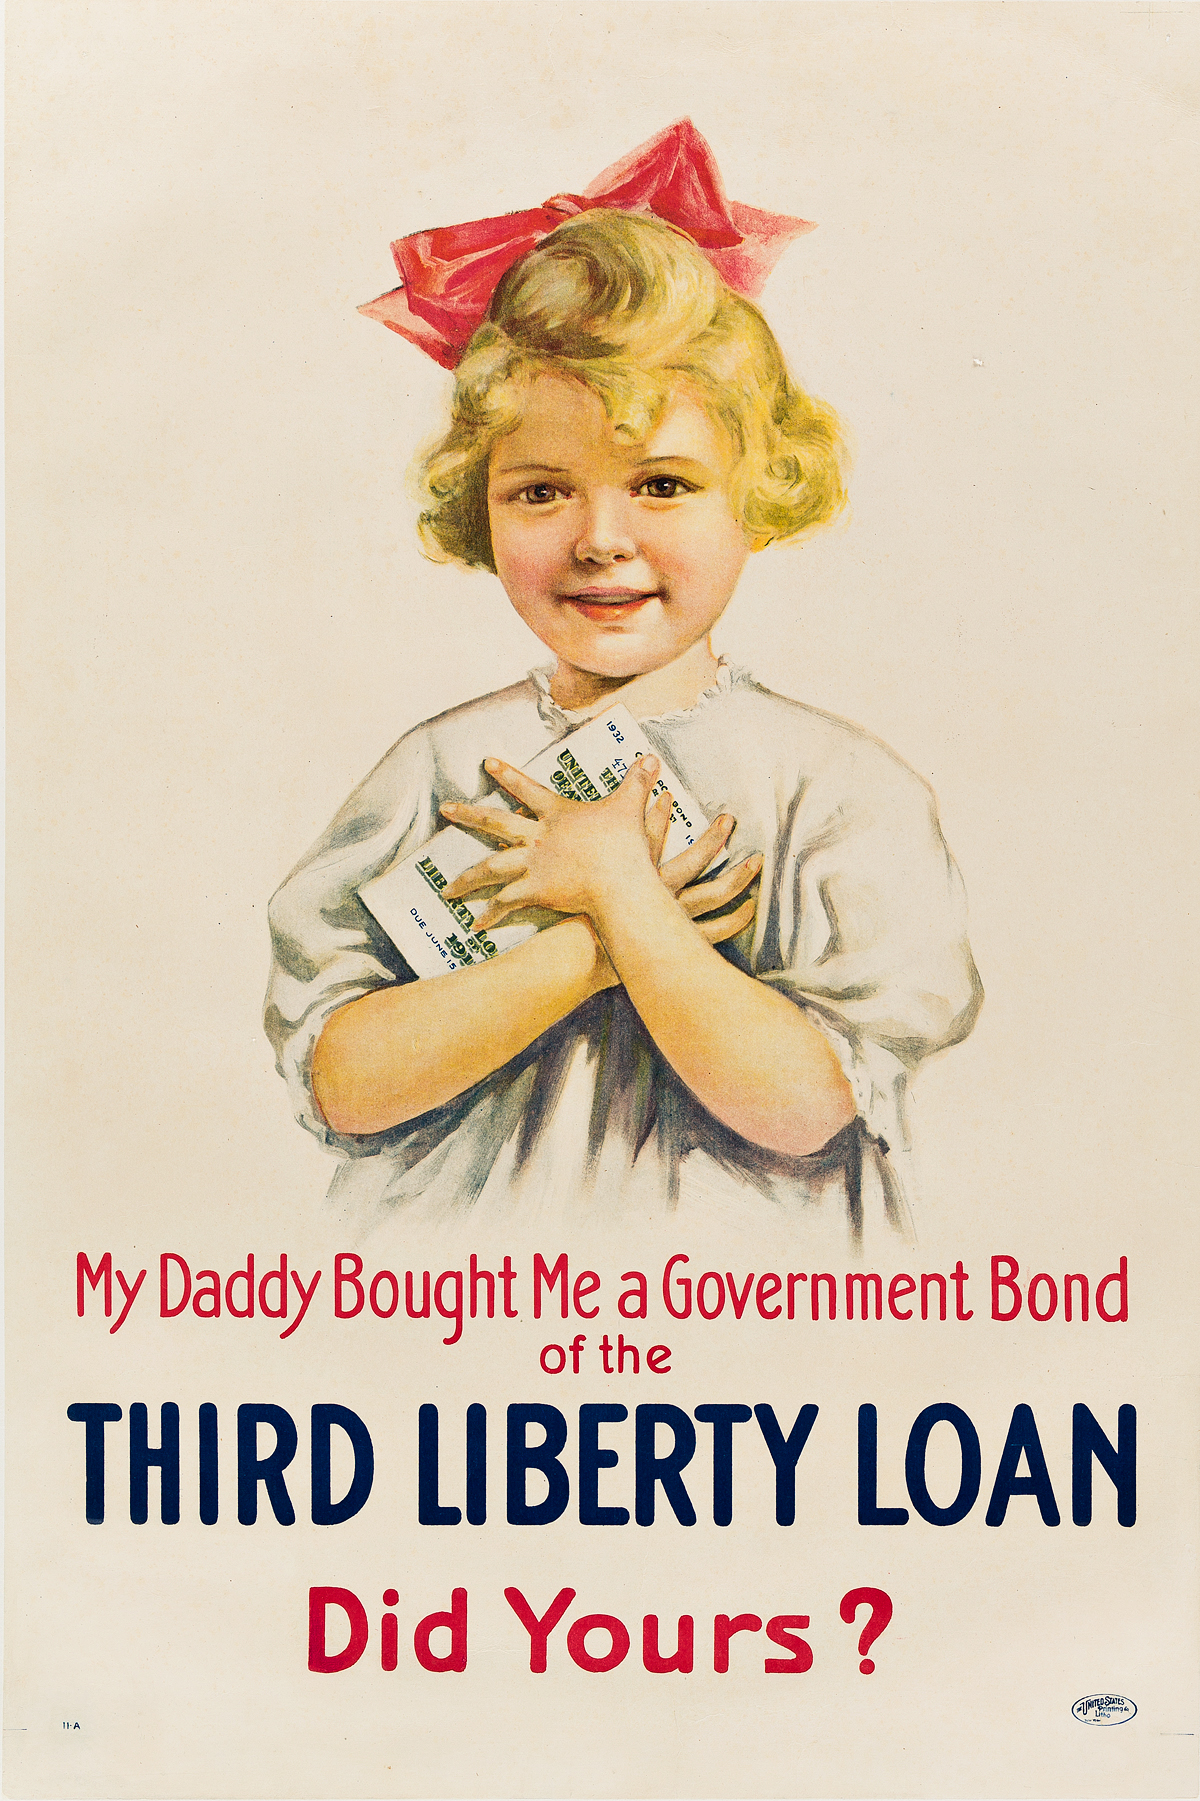 VARIOUS-ARTISTS-[WORLD-WAR-I--BONDS--LOANS]-Group-of-12-posters-Circa-1917-Sizes-vary